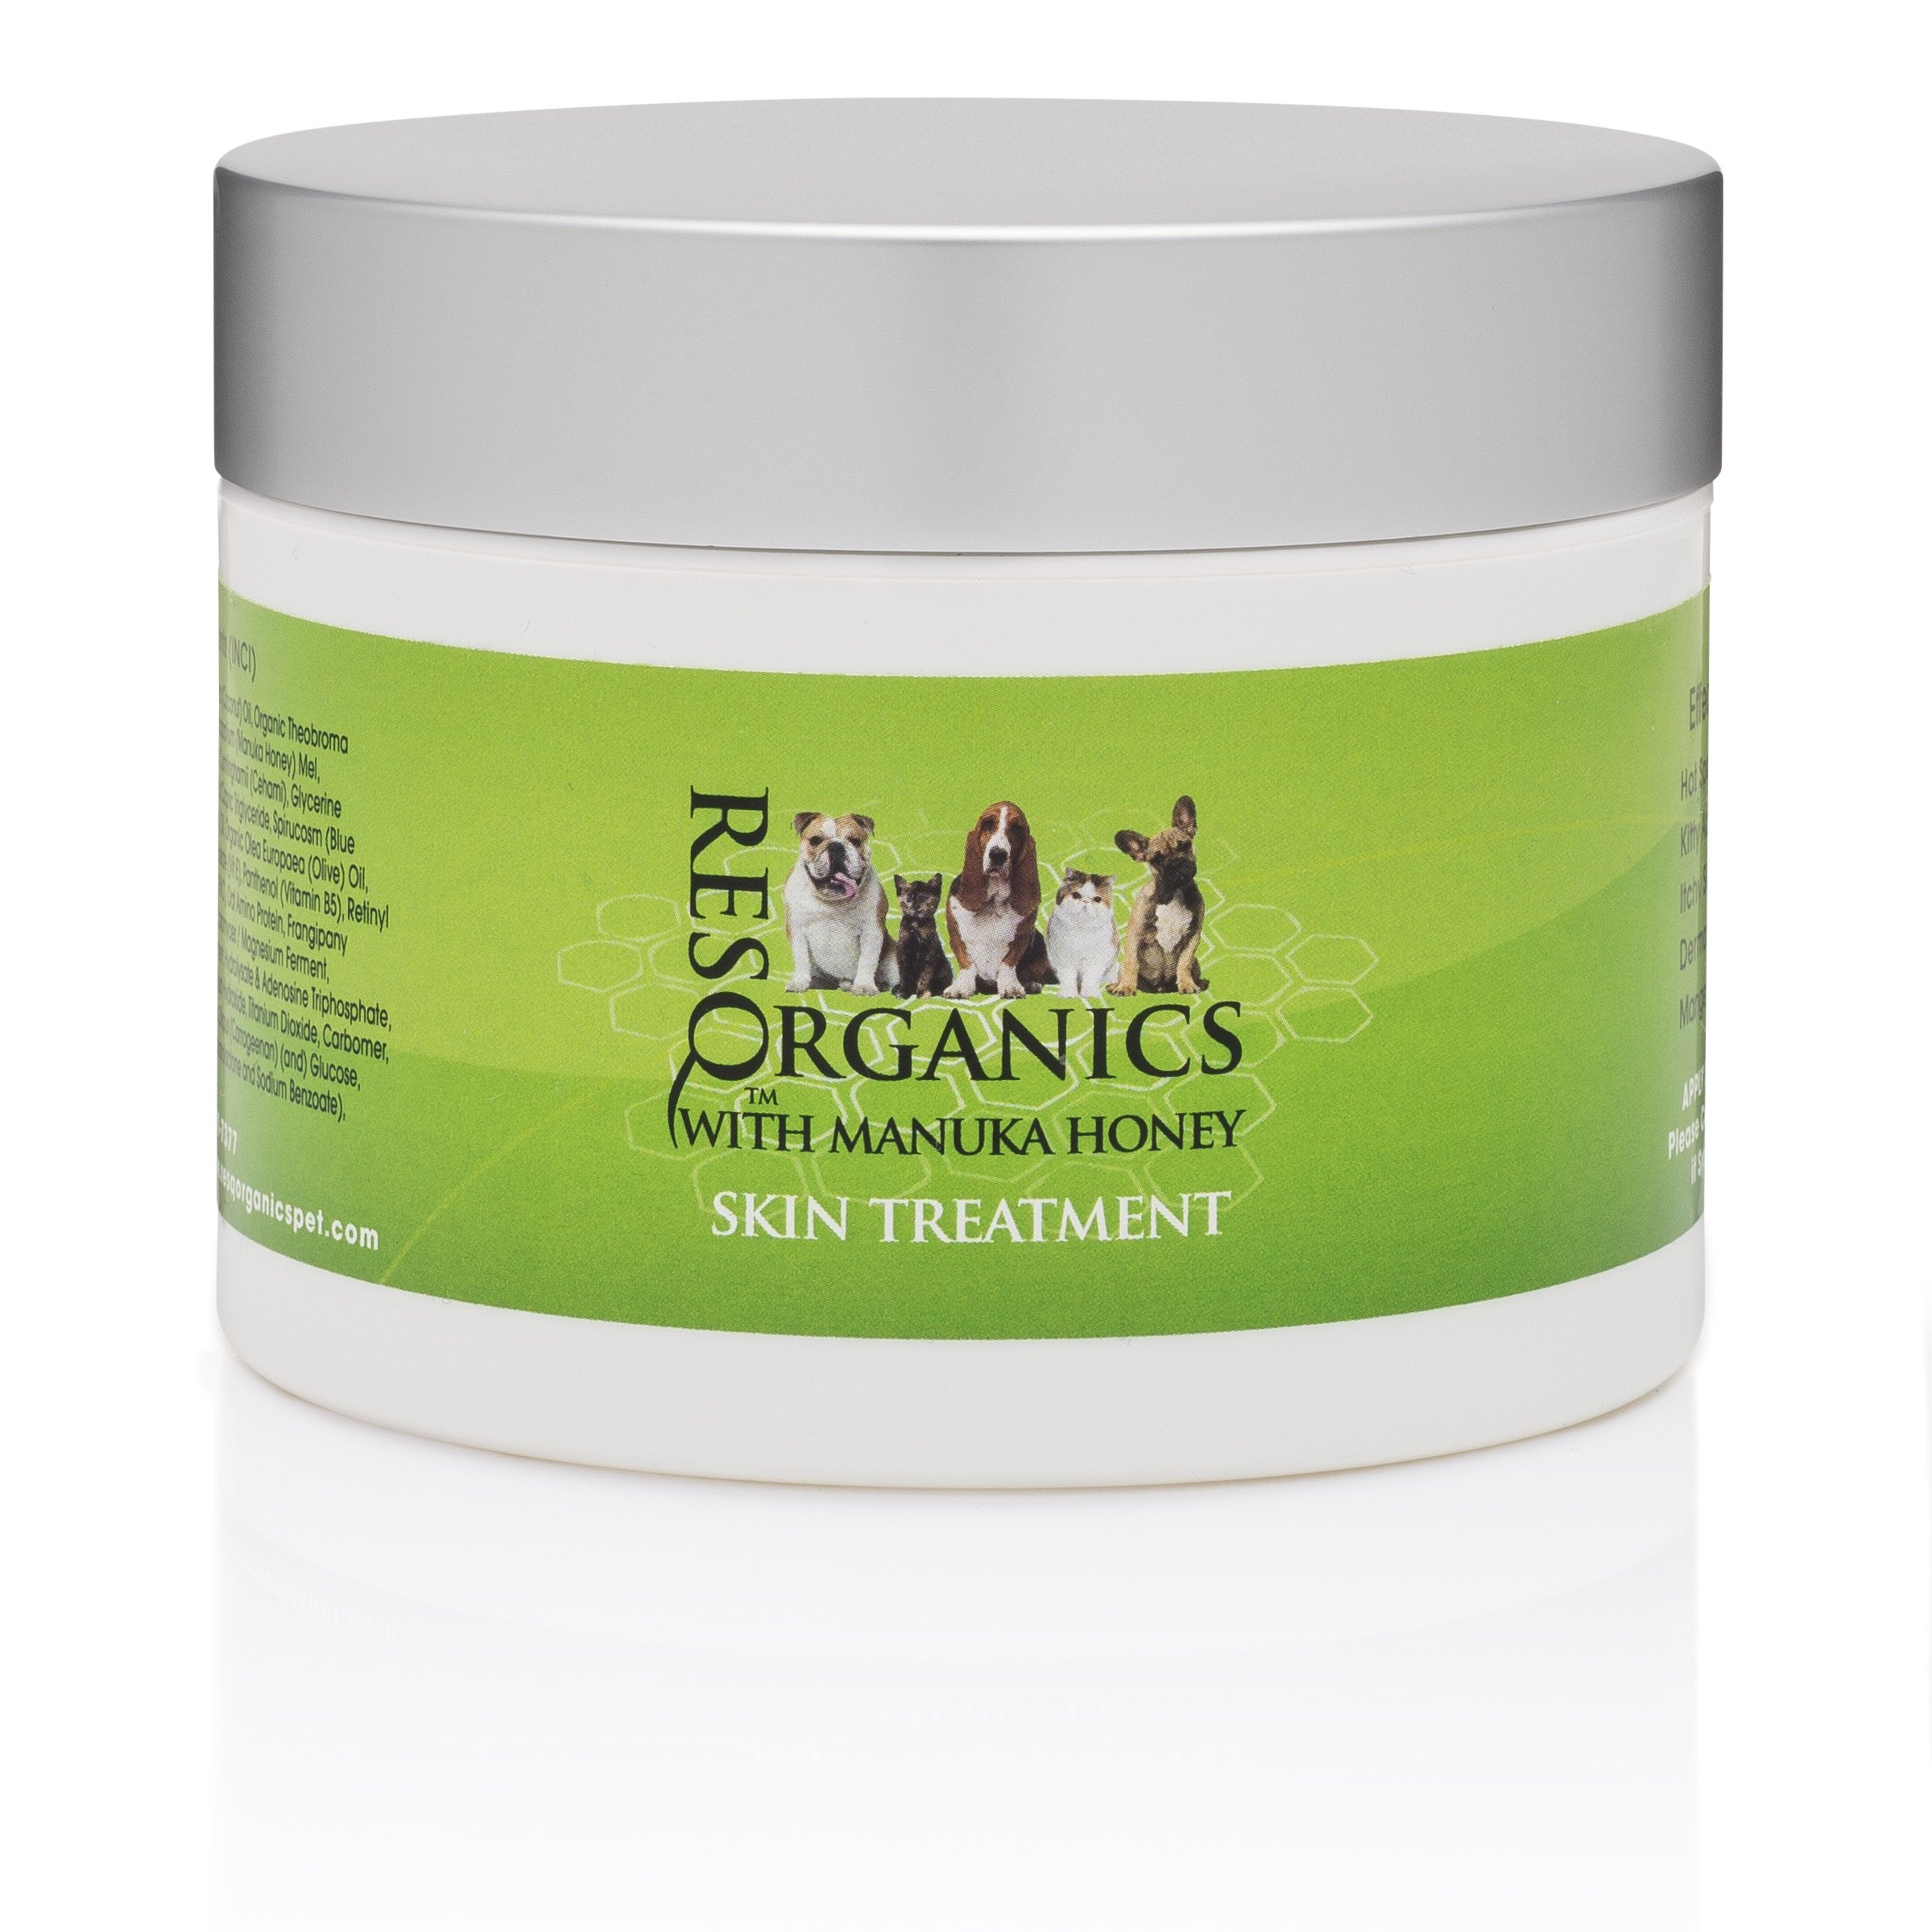 ResQ Organics Pet Skin Treatment 4oz - Effective For Hot Spots, Mange, Itchy Skin, Allergies, Dry Nose, Cracked Paws, Promotes Hair Growth.